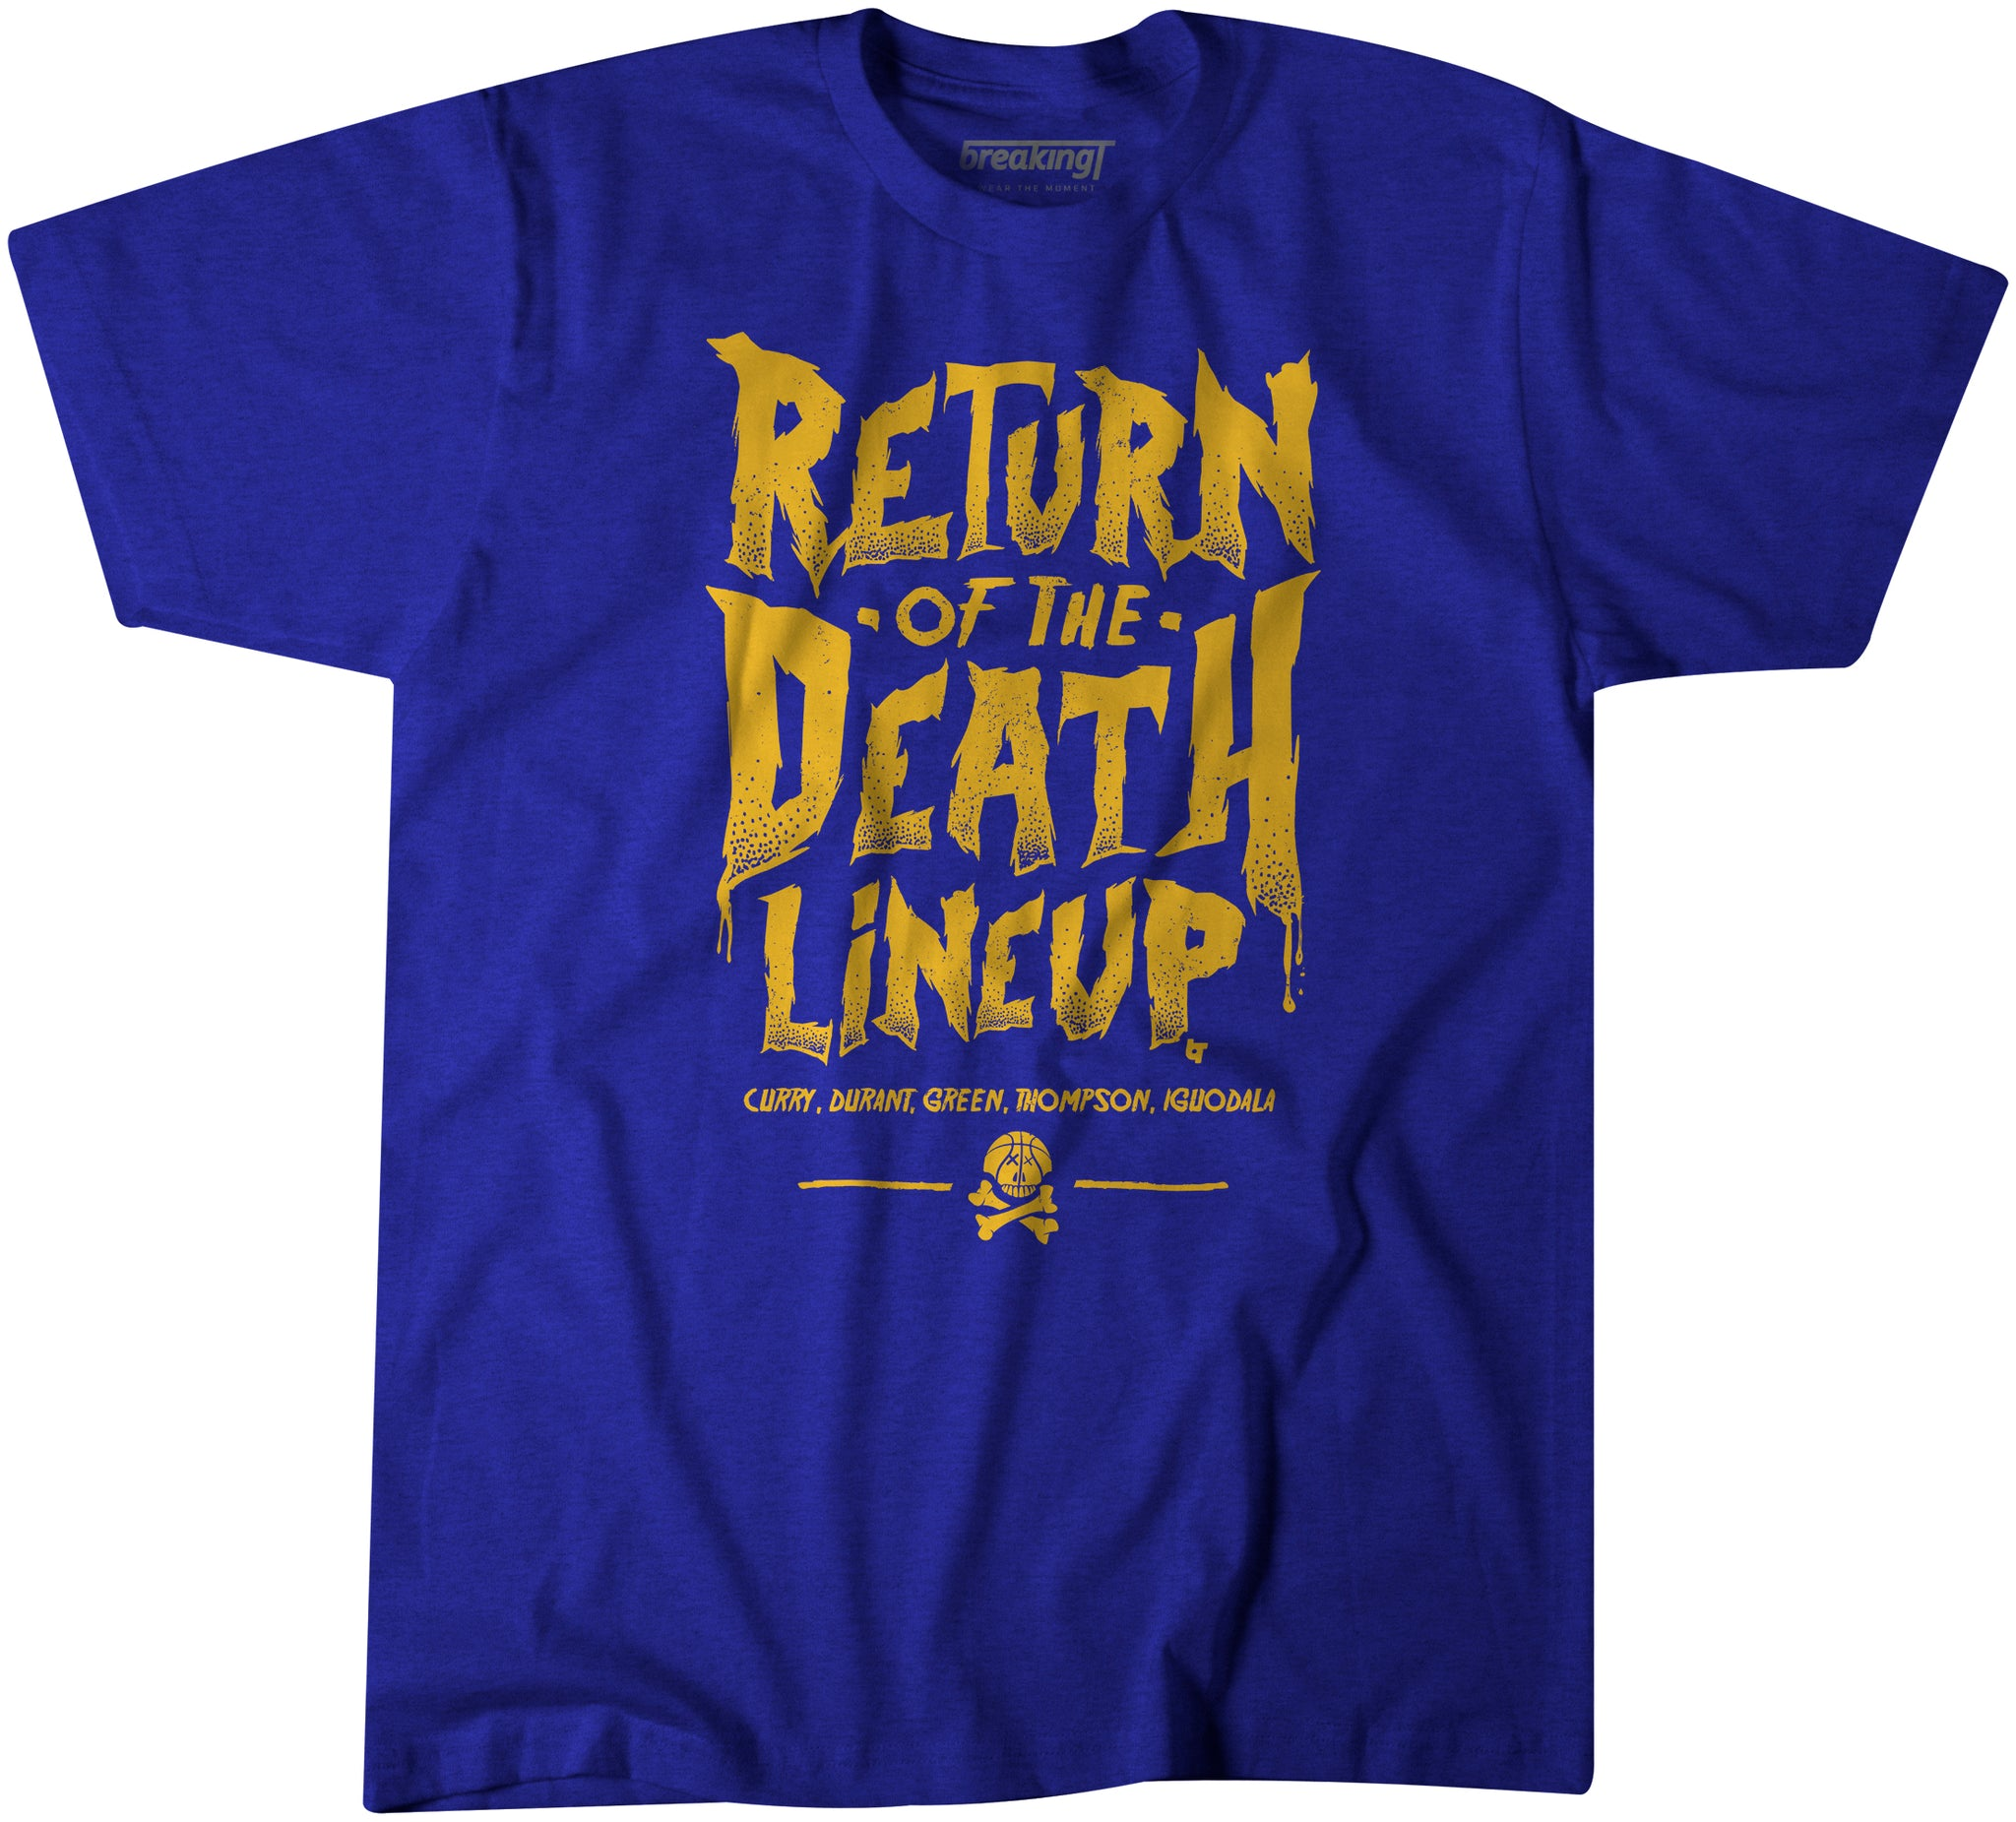 competitive price 01f52 fd328 Return of the Death Lineup